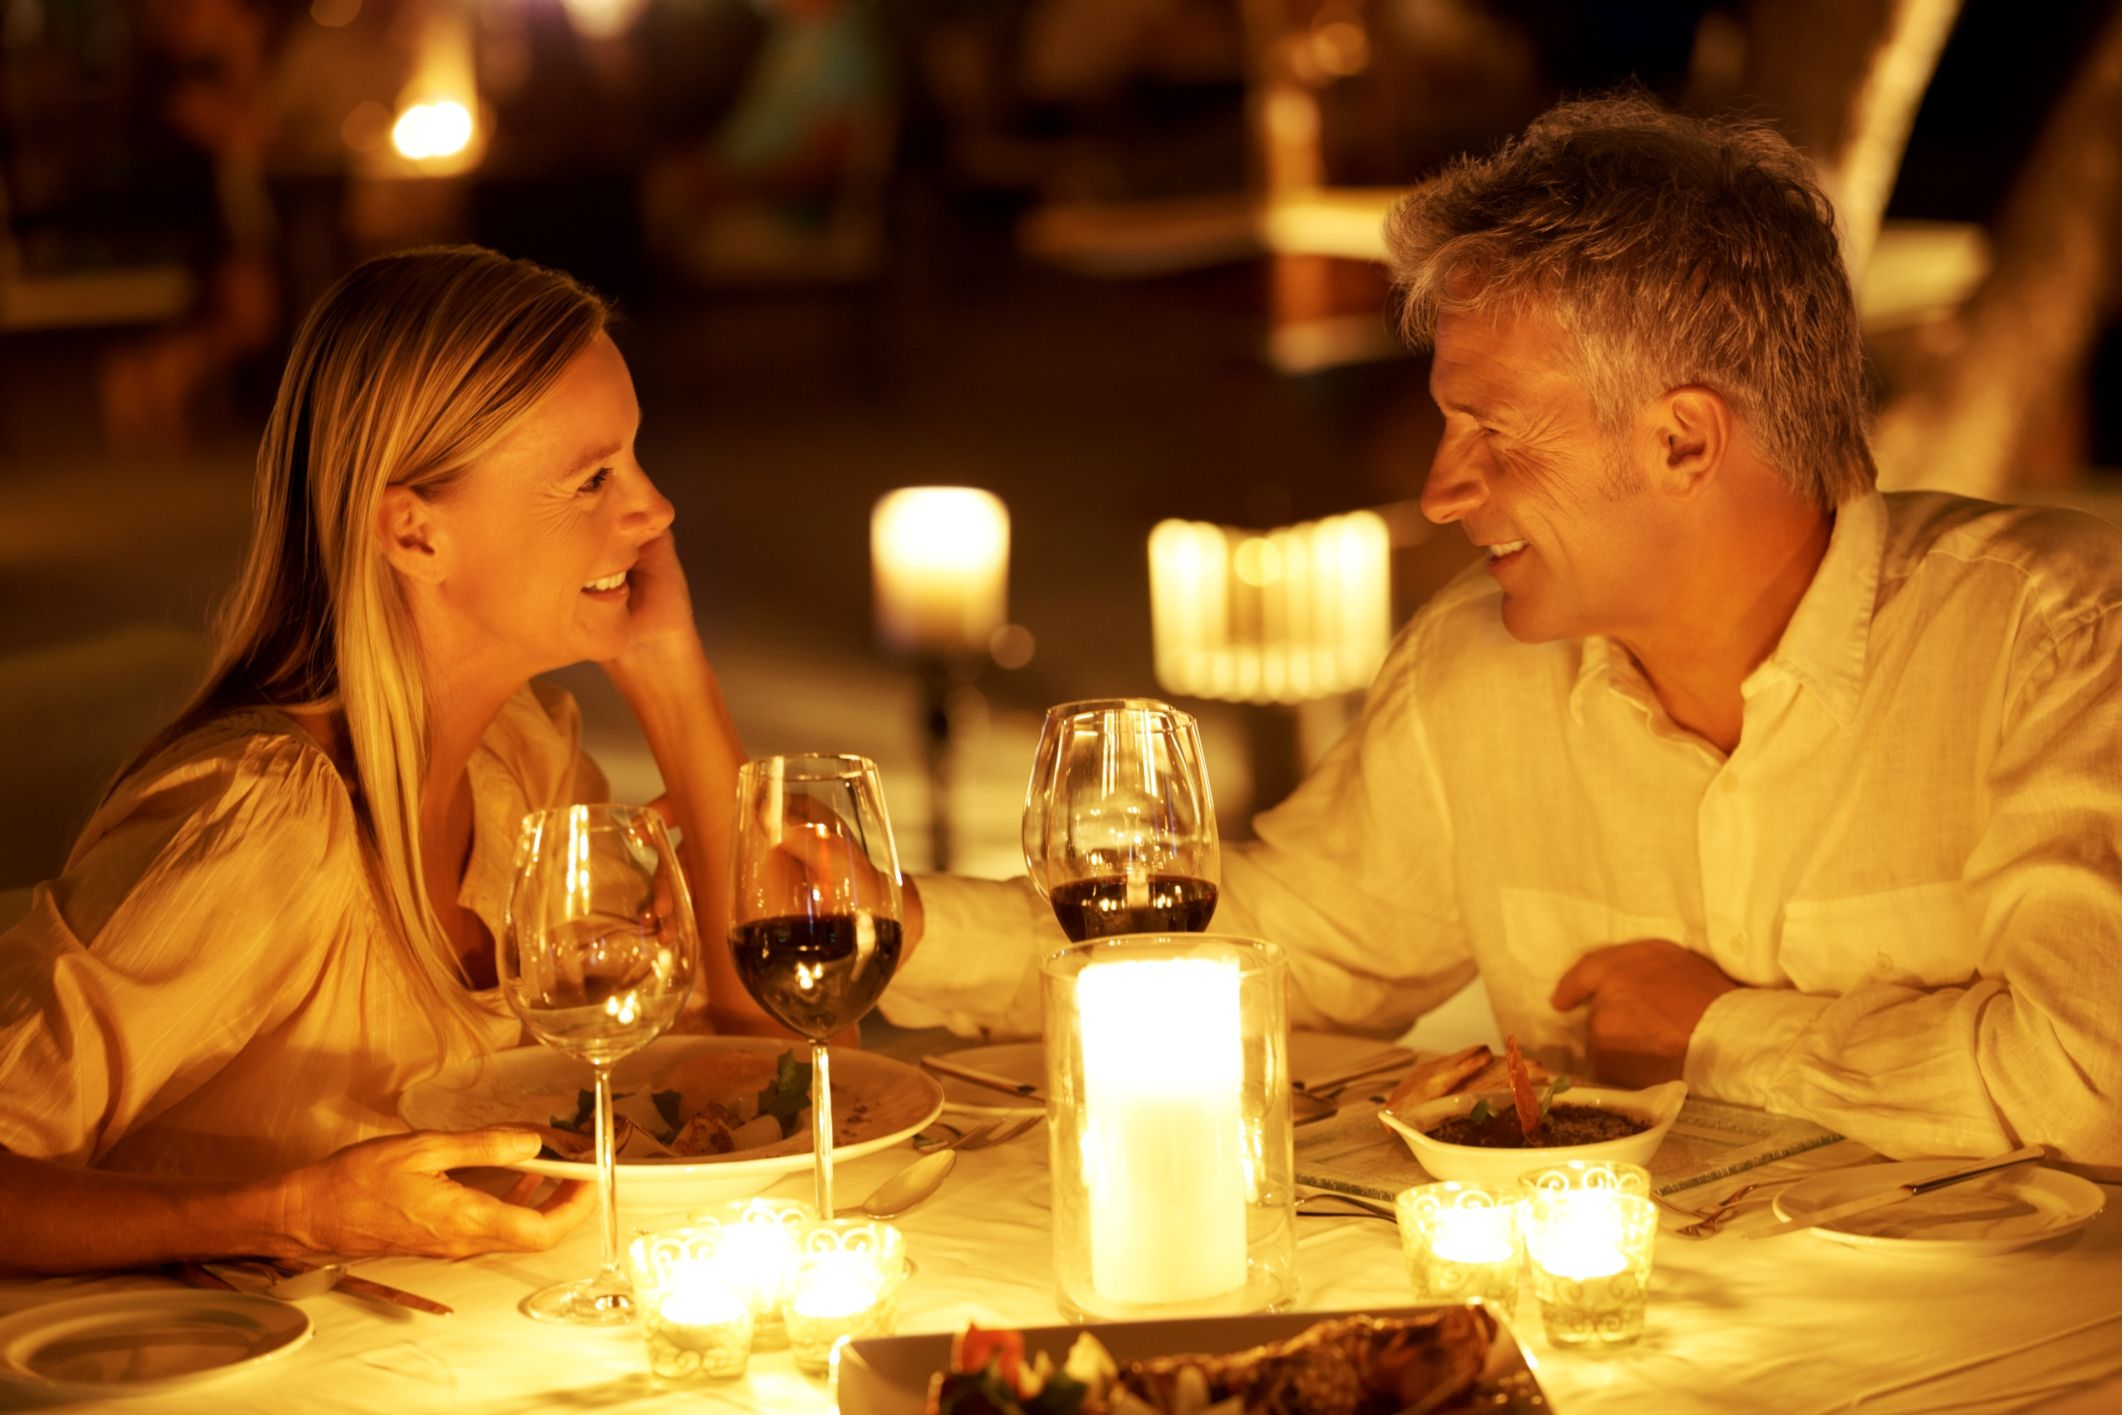 How to Make Your Honeymoon That Little Bit More Special